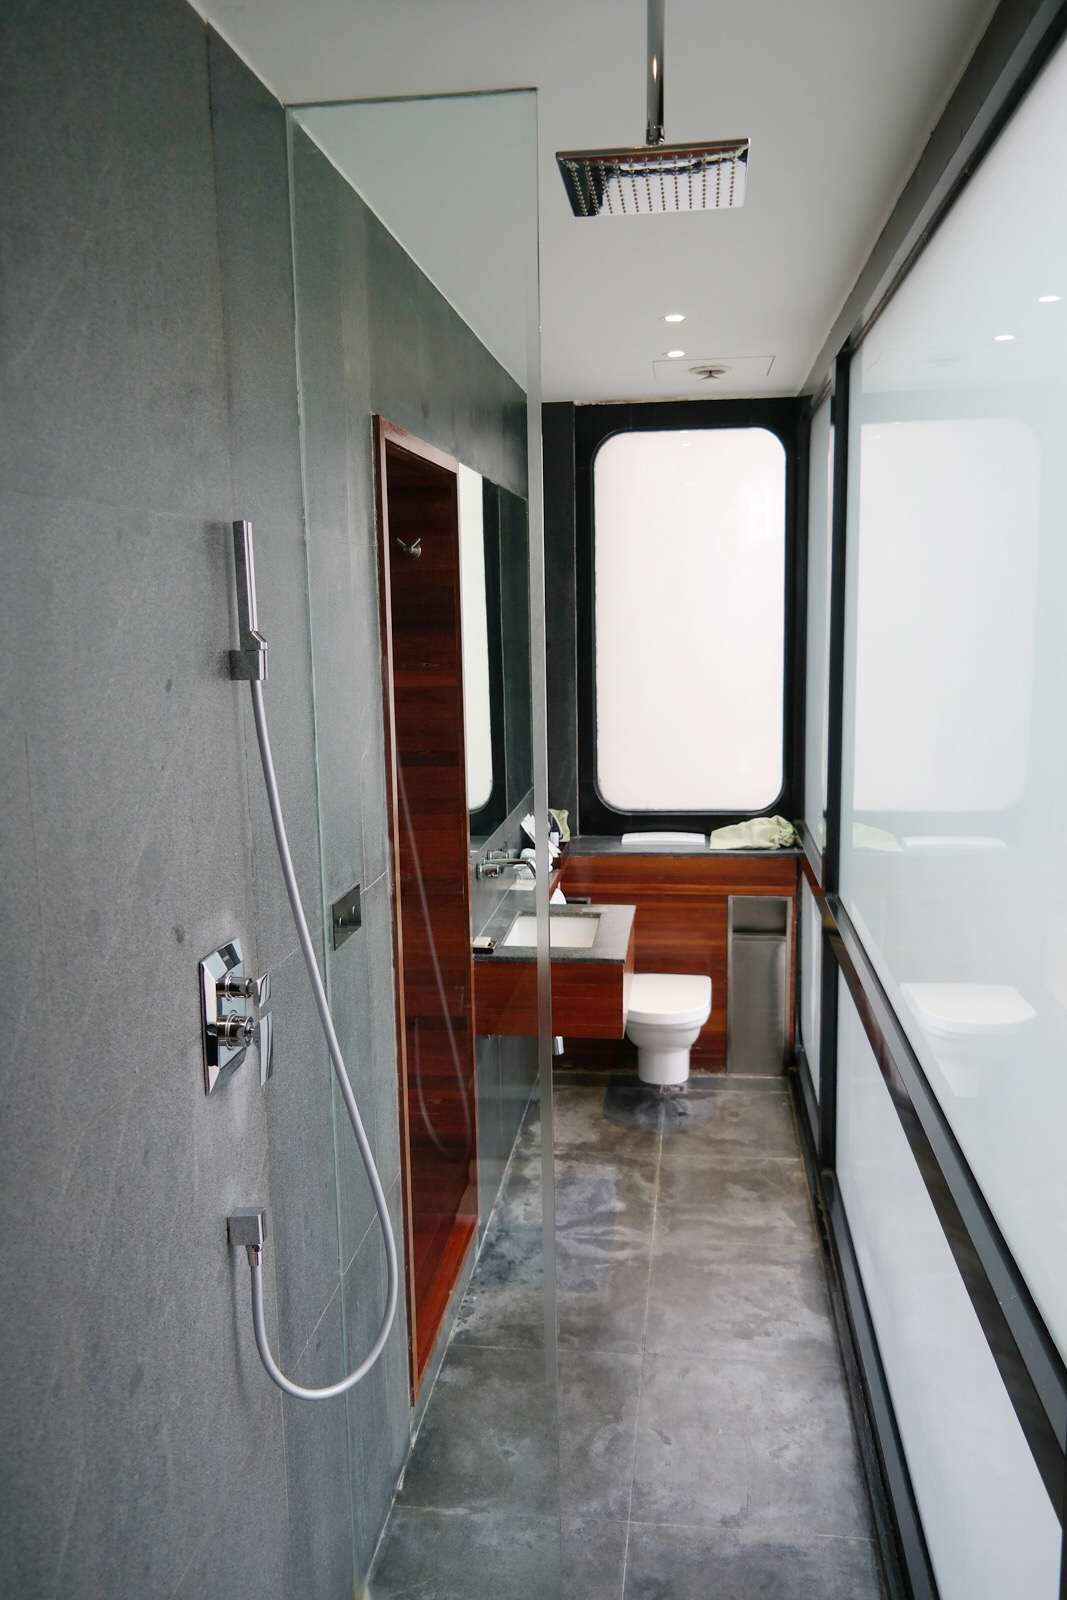 URBN Hotel Shanghai deluxe bathroom design eco chic comfort boutique hotel Tempting Places Jiaozhou Rd Jing'an district photo UsofParis travel blog